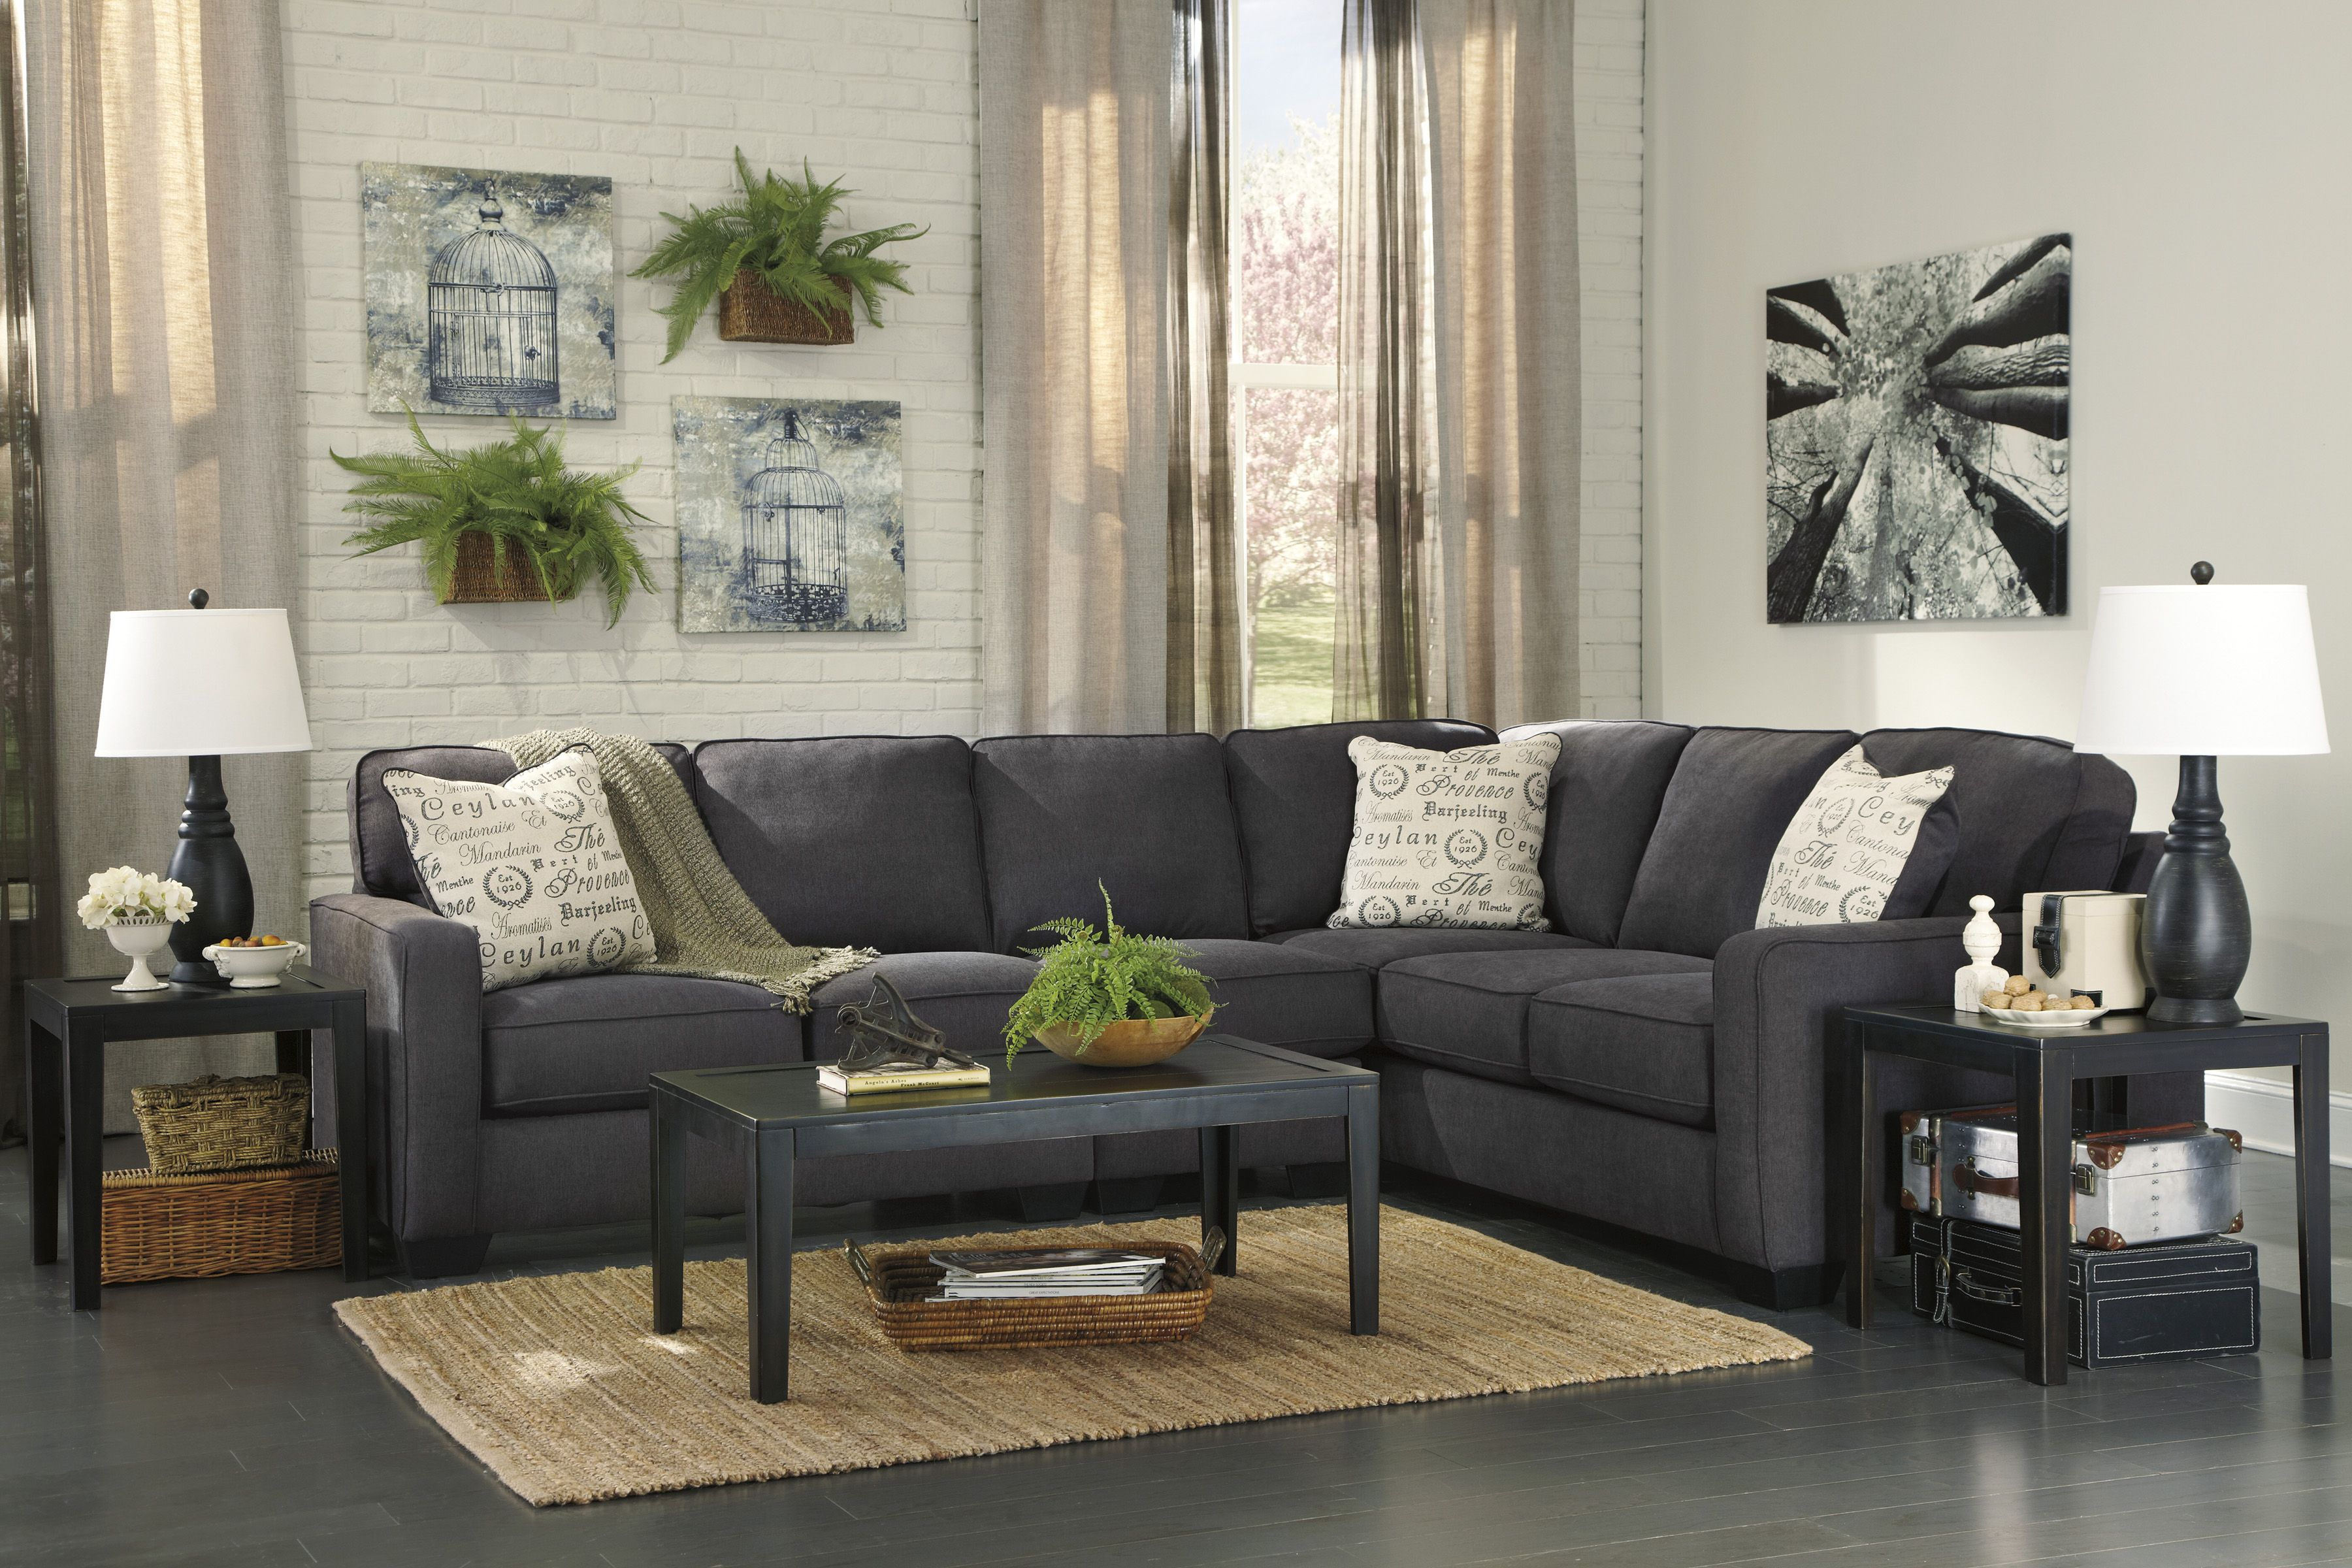 Alenya 3 Piece Corner Sofa Sectional In Charcoal Marje